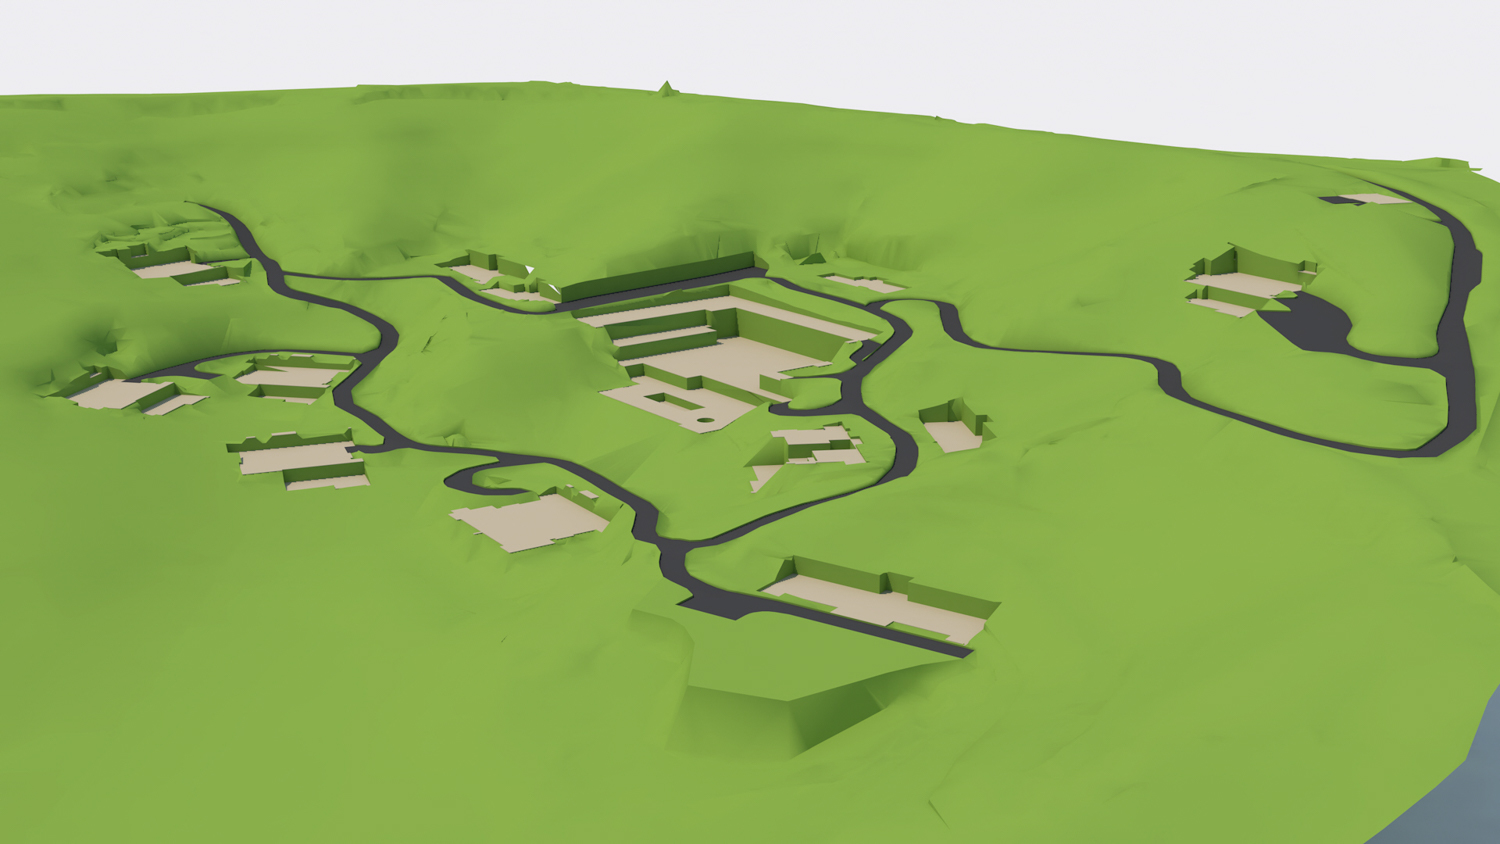 cut and fill site render roads and excavations 1920x1080px Full-HD.jpg